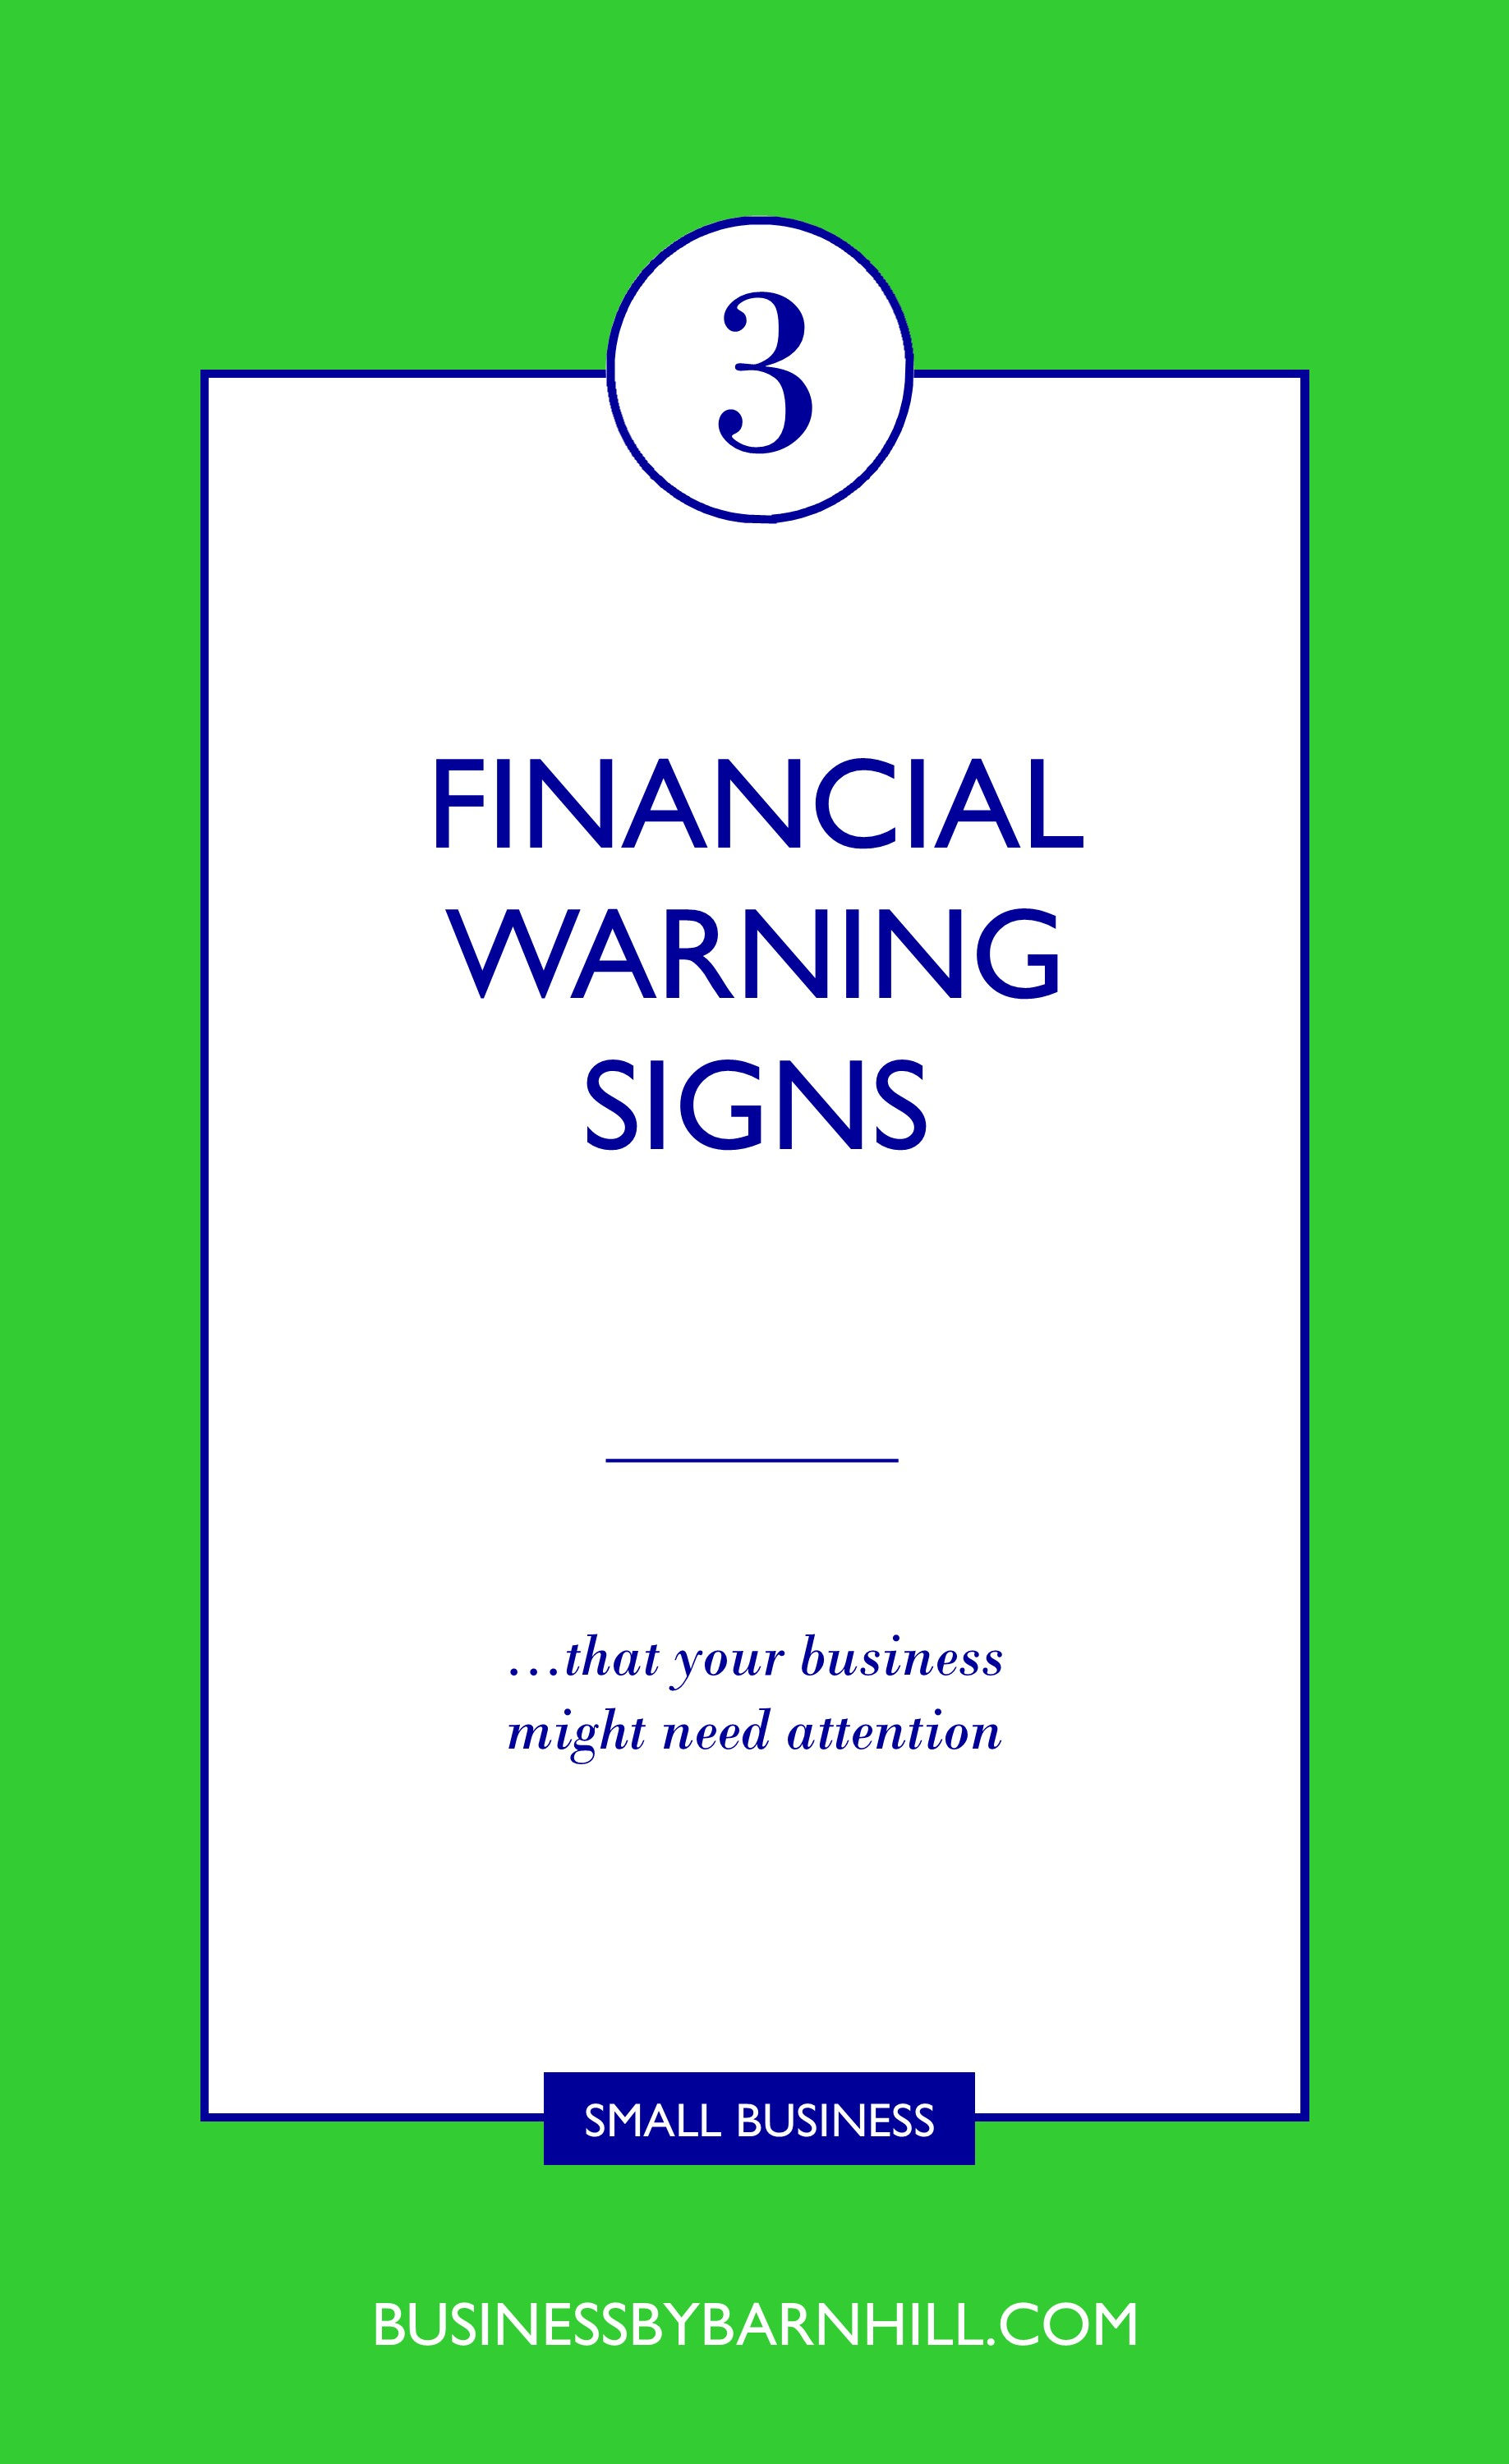 business by barnhill pinterest 3 financial warning signs that your business may need your attention.jpg